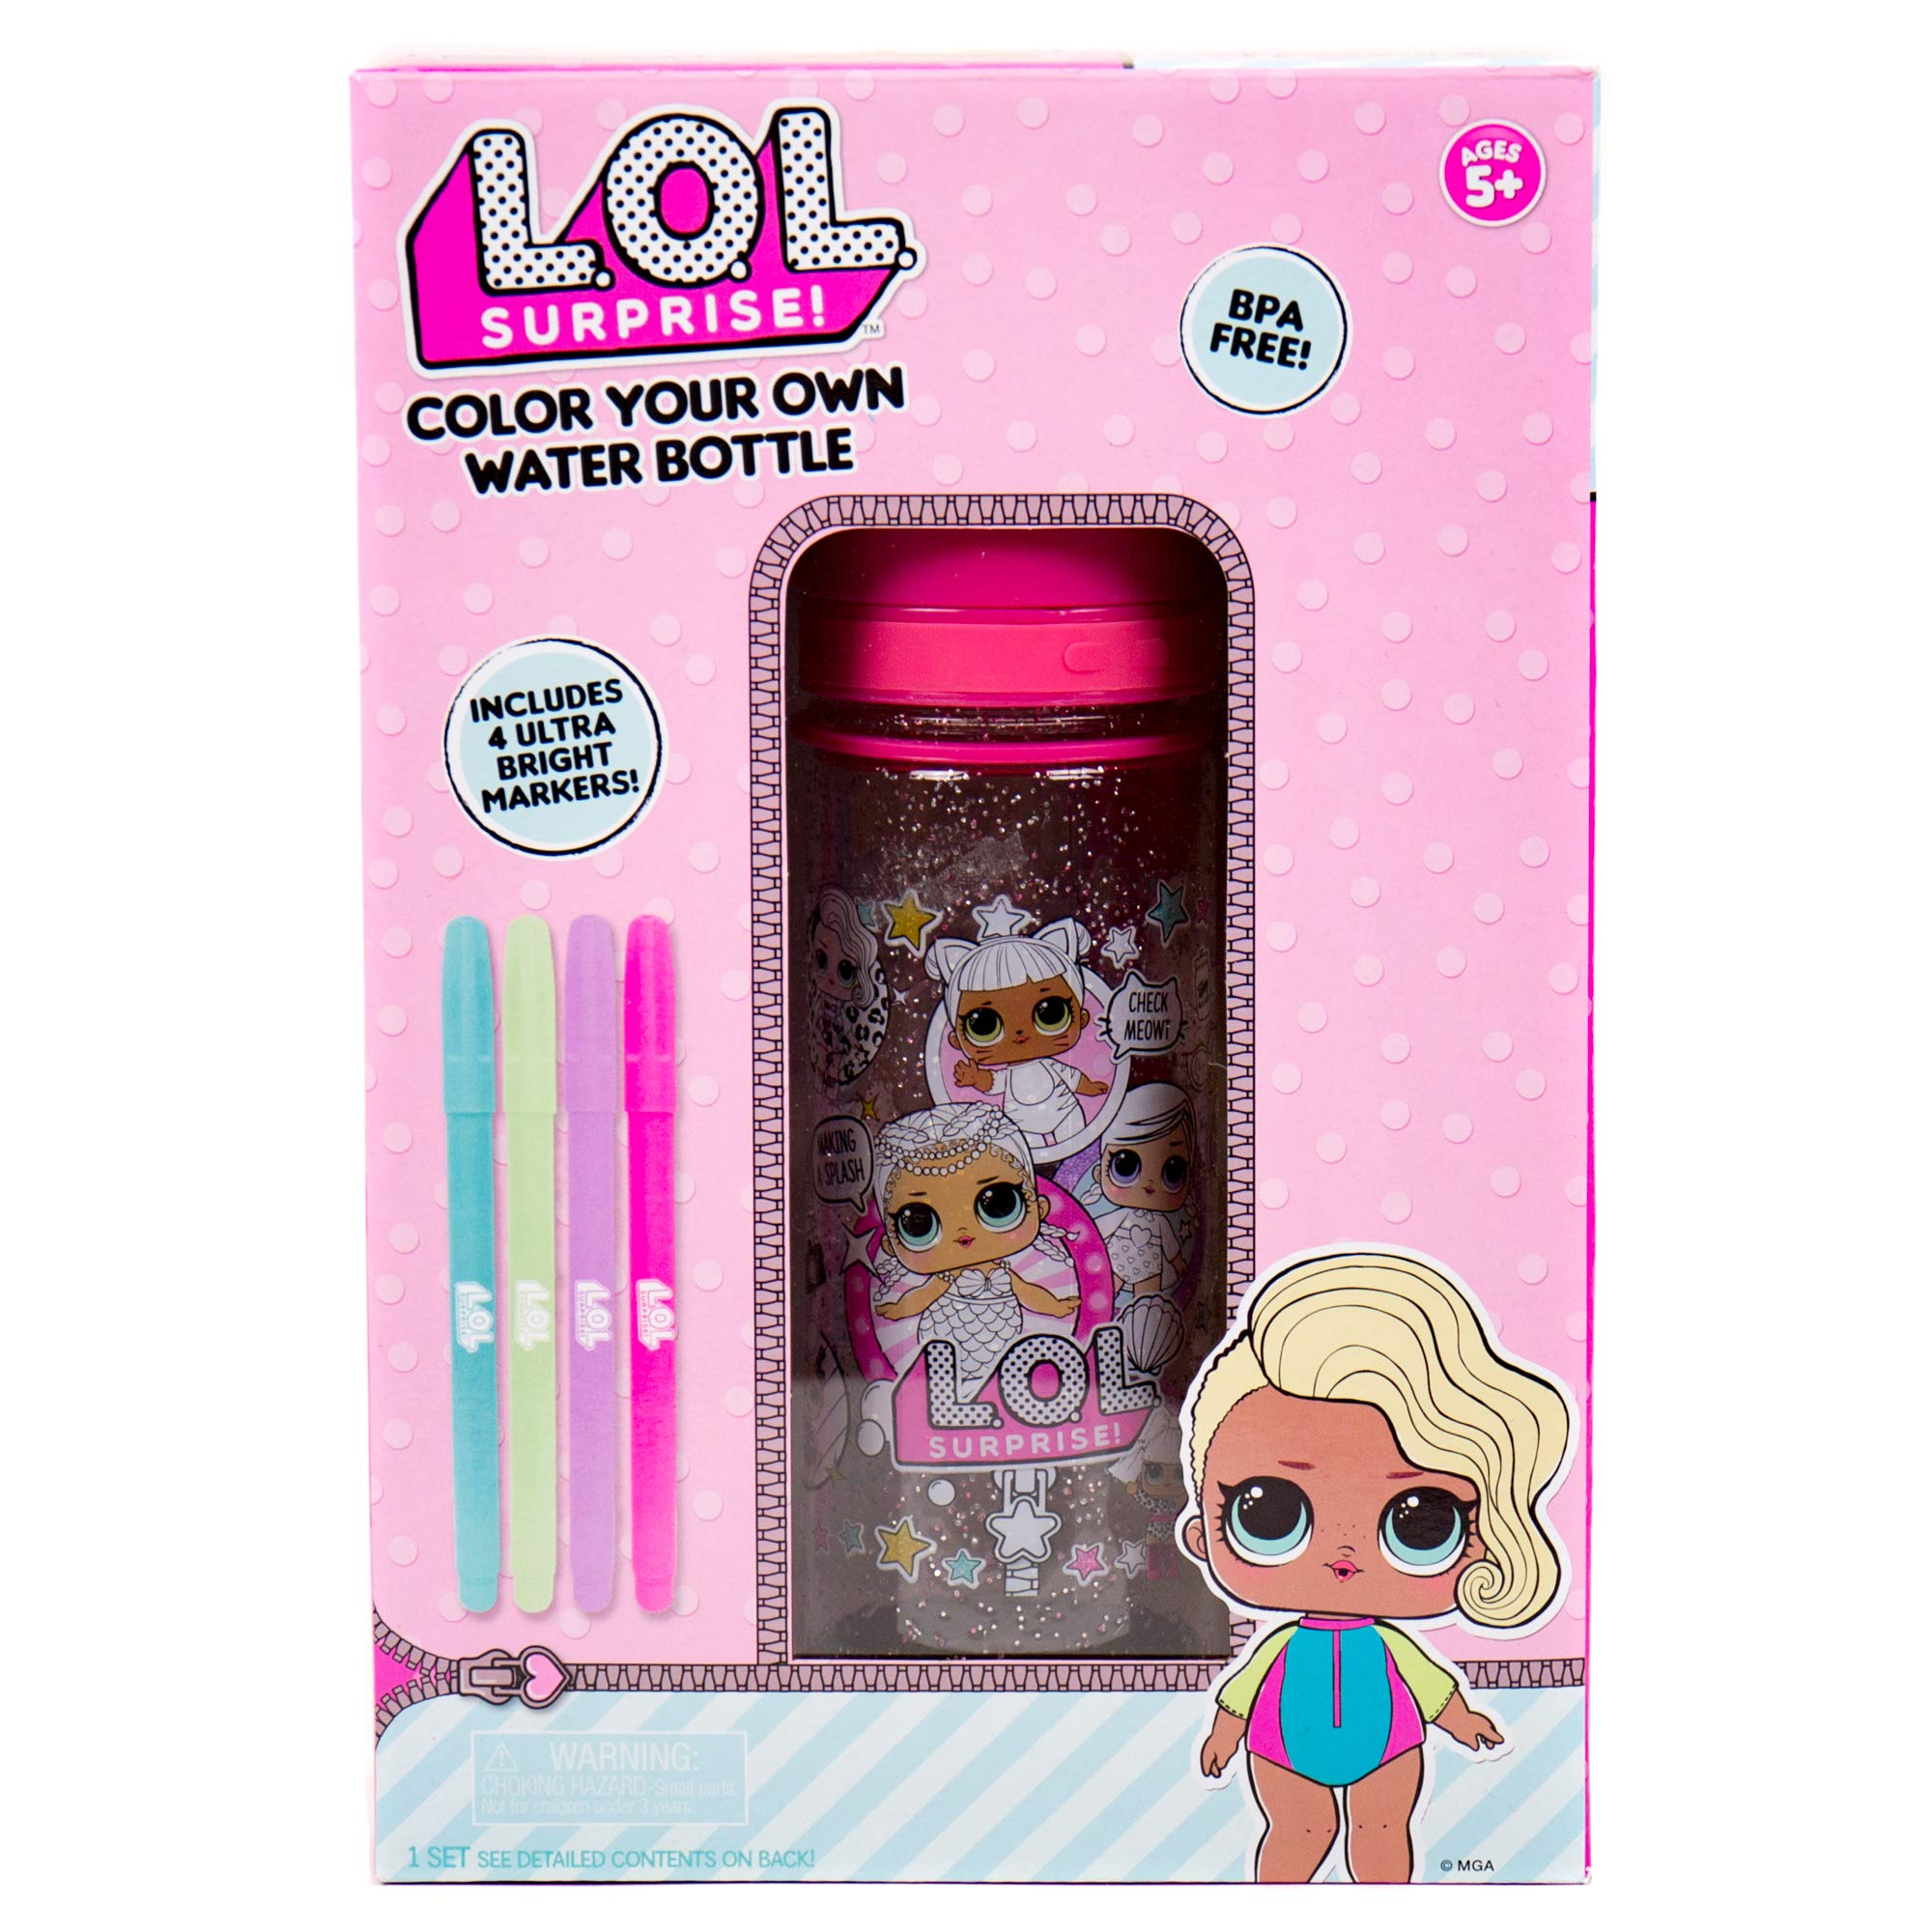 L.O.L. Surprise! Color Your Own Water Bottle by Horizon Group USA